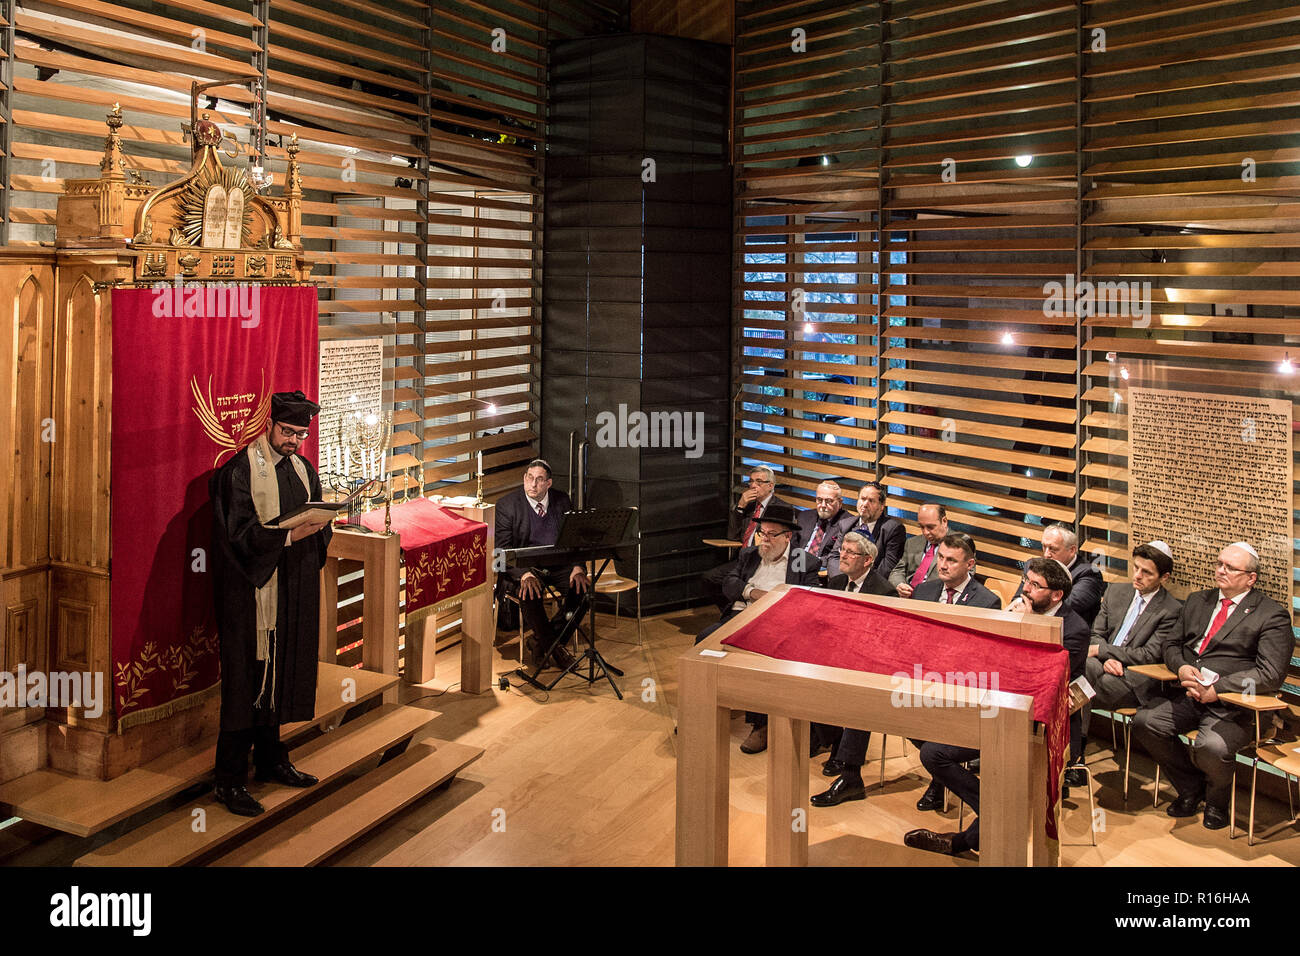 Liberec, Czech Republic. 09th Nov, 2018. The anniversary of the 1938 Kristallnacht (Crystal Night) anti-Jewish pogrom in November 1938, when the synagogue in Liberec (then Reichenberg in German) was burnt down, was commemorated in a new synagogue in the town today, on Friday, November 9, 2018. Credit: Radek Petrasek/CTK Photo/Alamy Live News Stock Photo